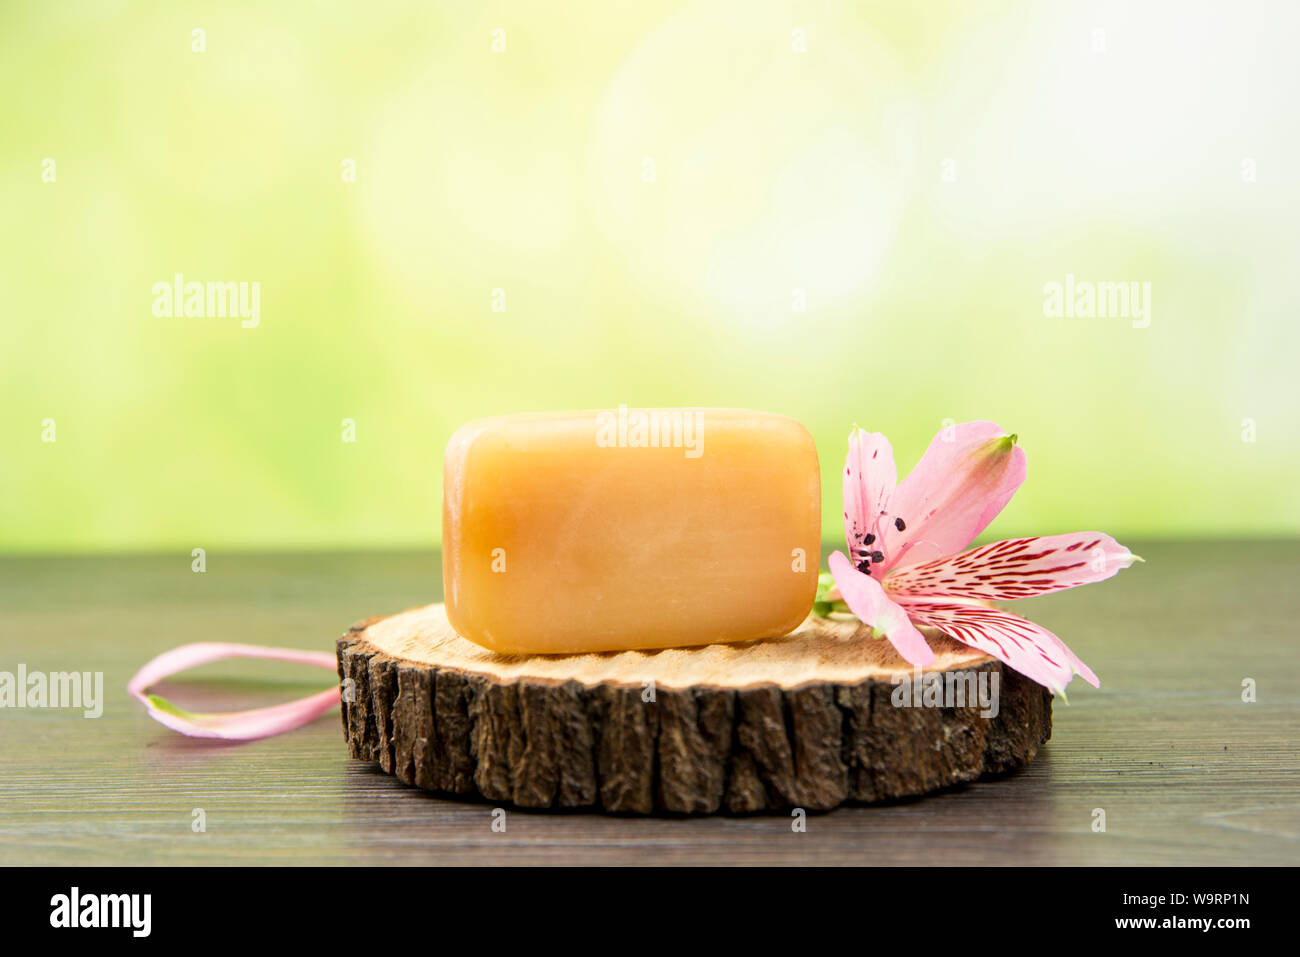 Removing stains with bile( gall, sap) soap bar  Natural